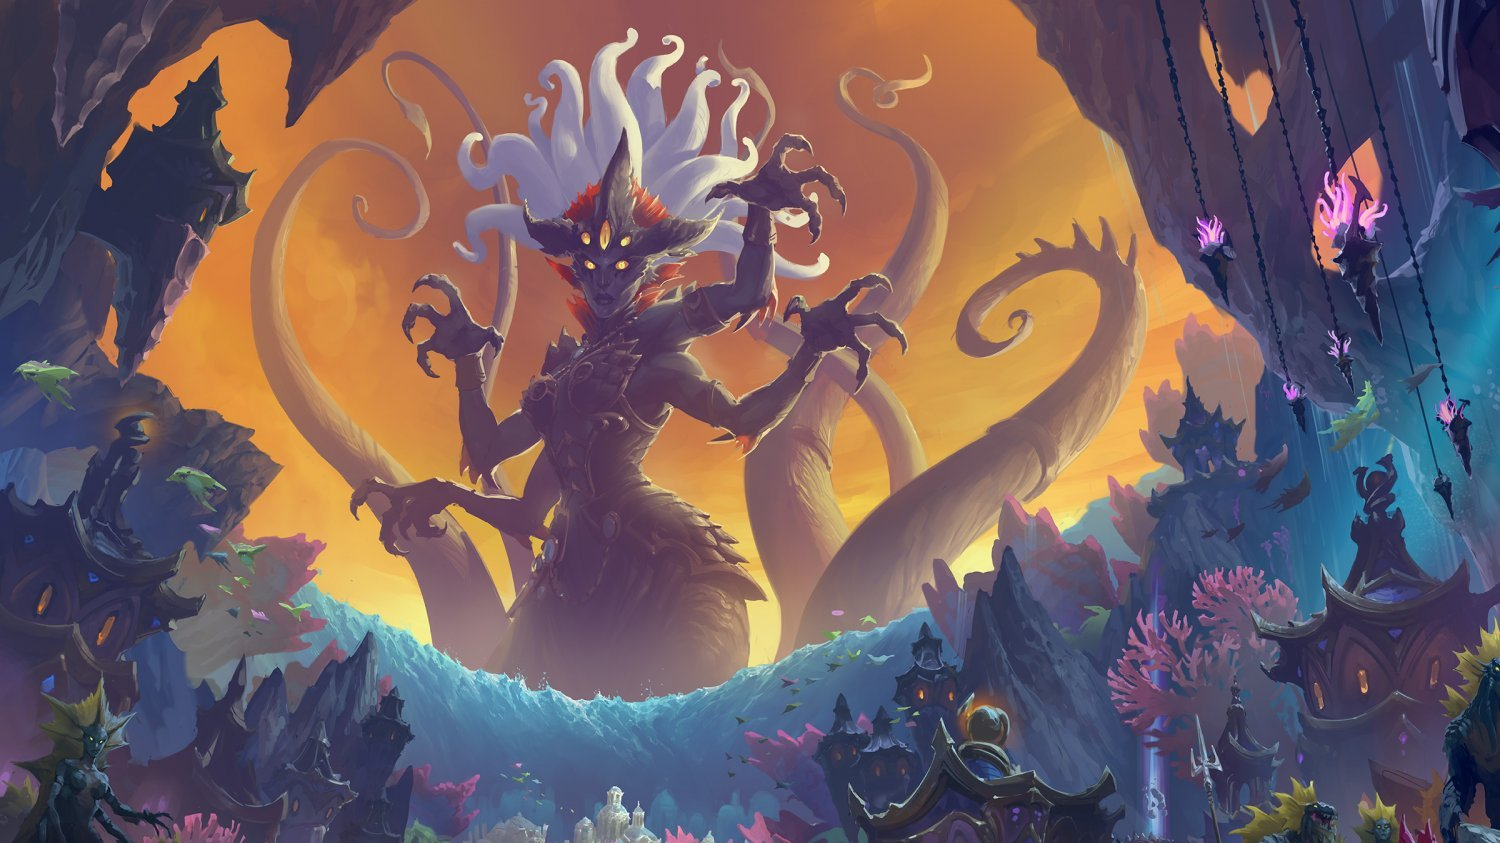 World of Warcraft Rise of Azshara Battle for Azeroth  18x28 inches Poster Print